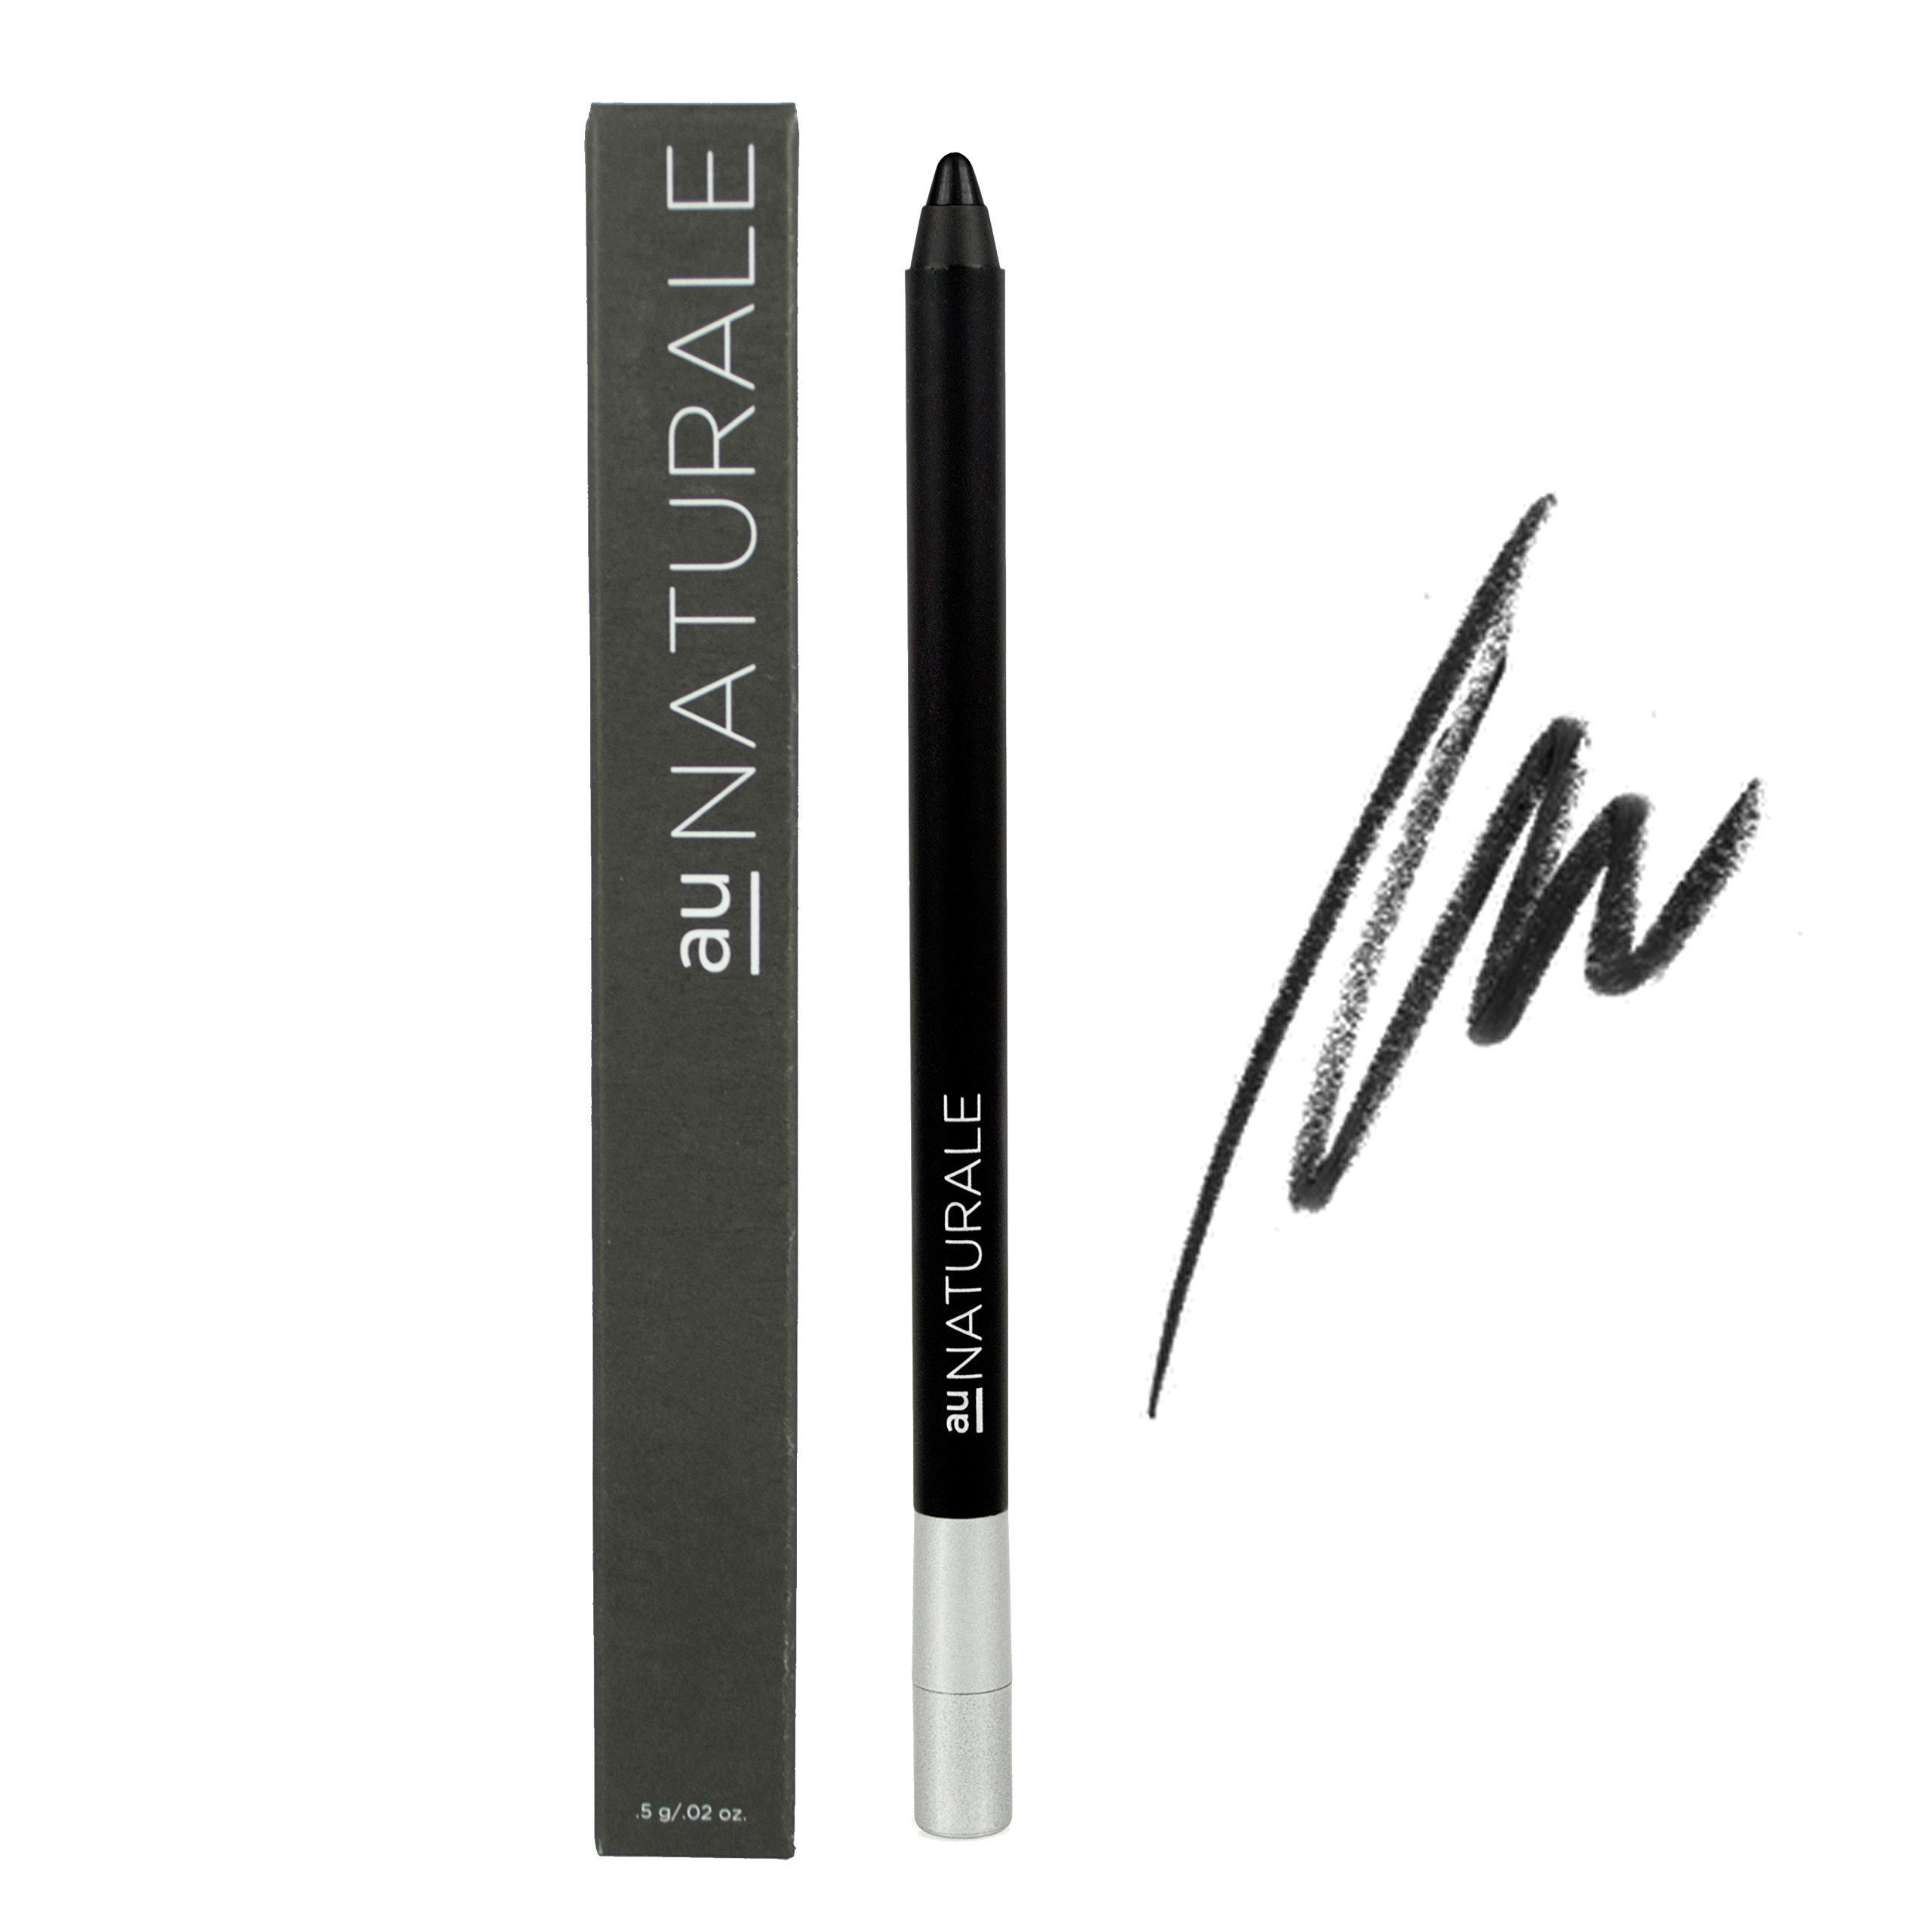 Au Naturale Organic Eye Liner Pencil in Night | Made in the USA | Organic | Vegan | Cruelty-free